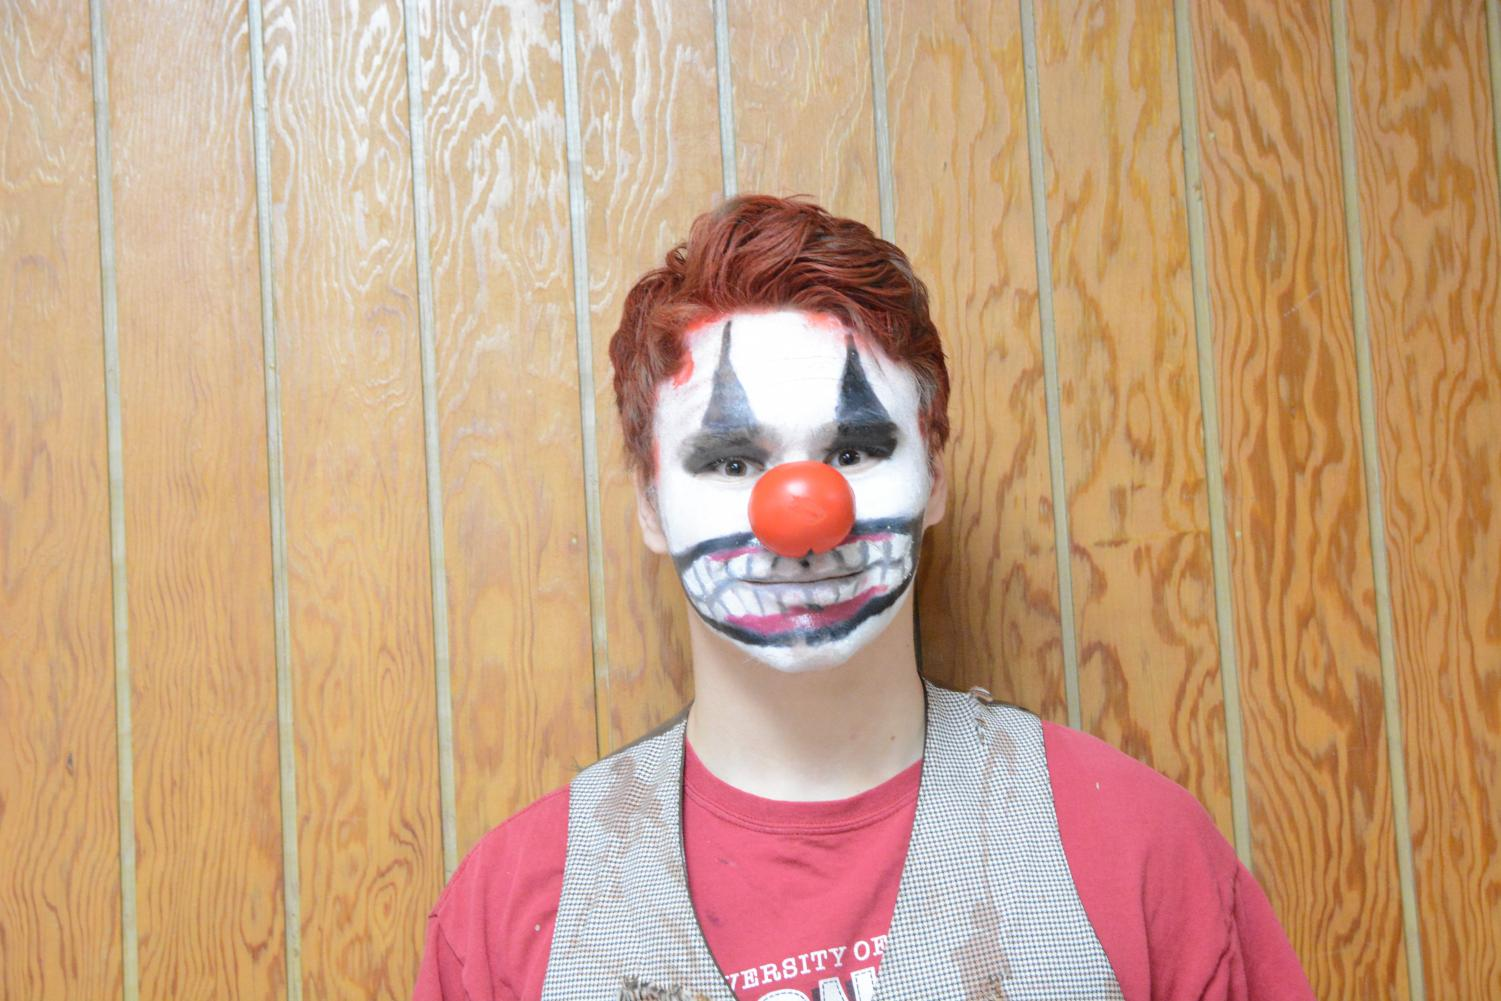 %22The+best+thing+I+have+done+for+Halloween+is+scaring+little+kids.%22+Seth+Coshatt